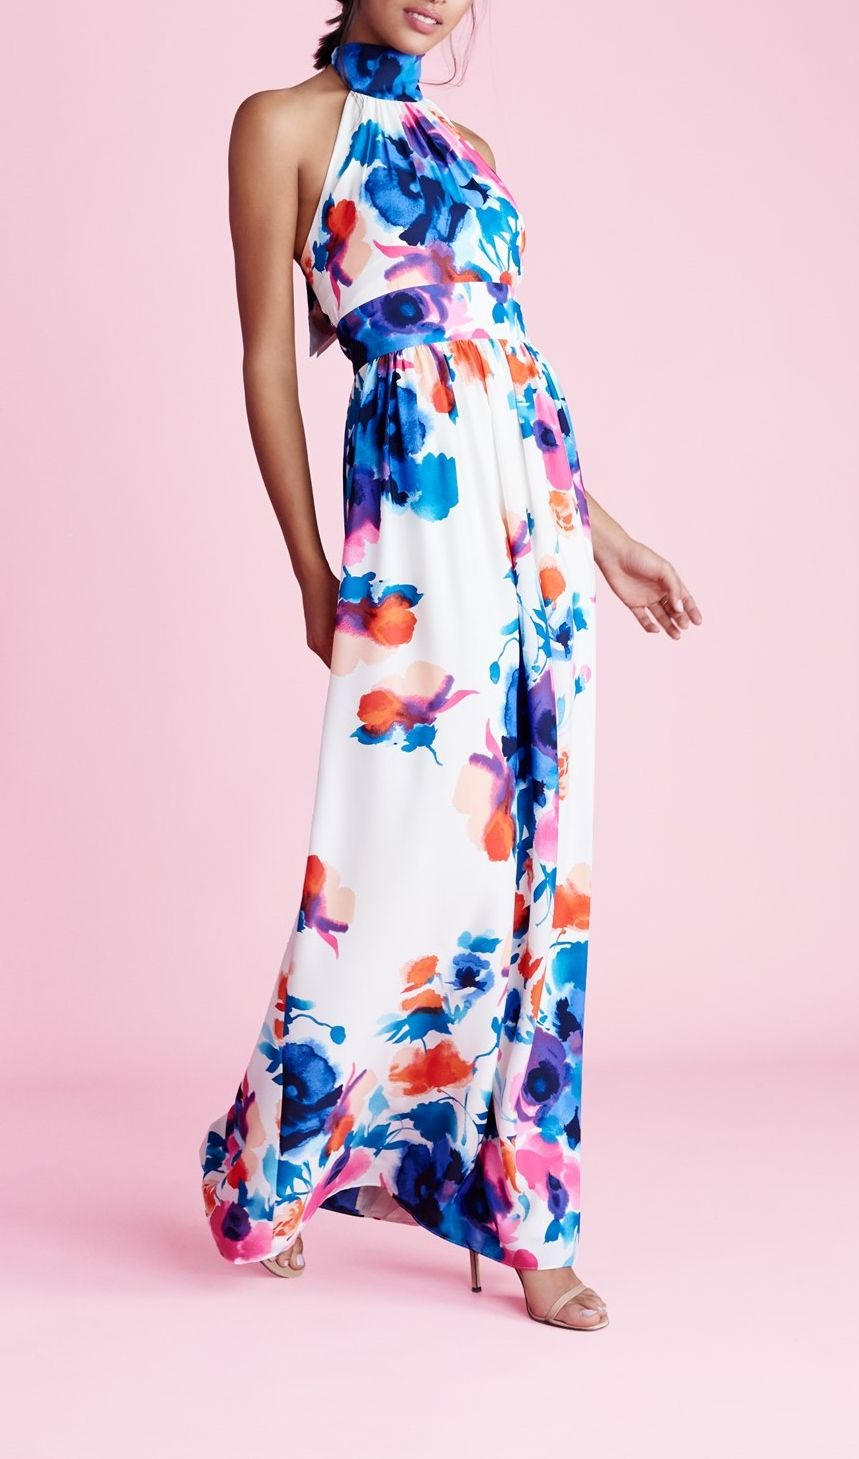 Floral flowy and festive perfect words to describe this maxi